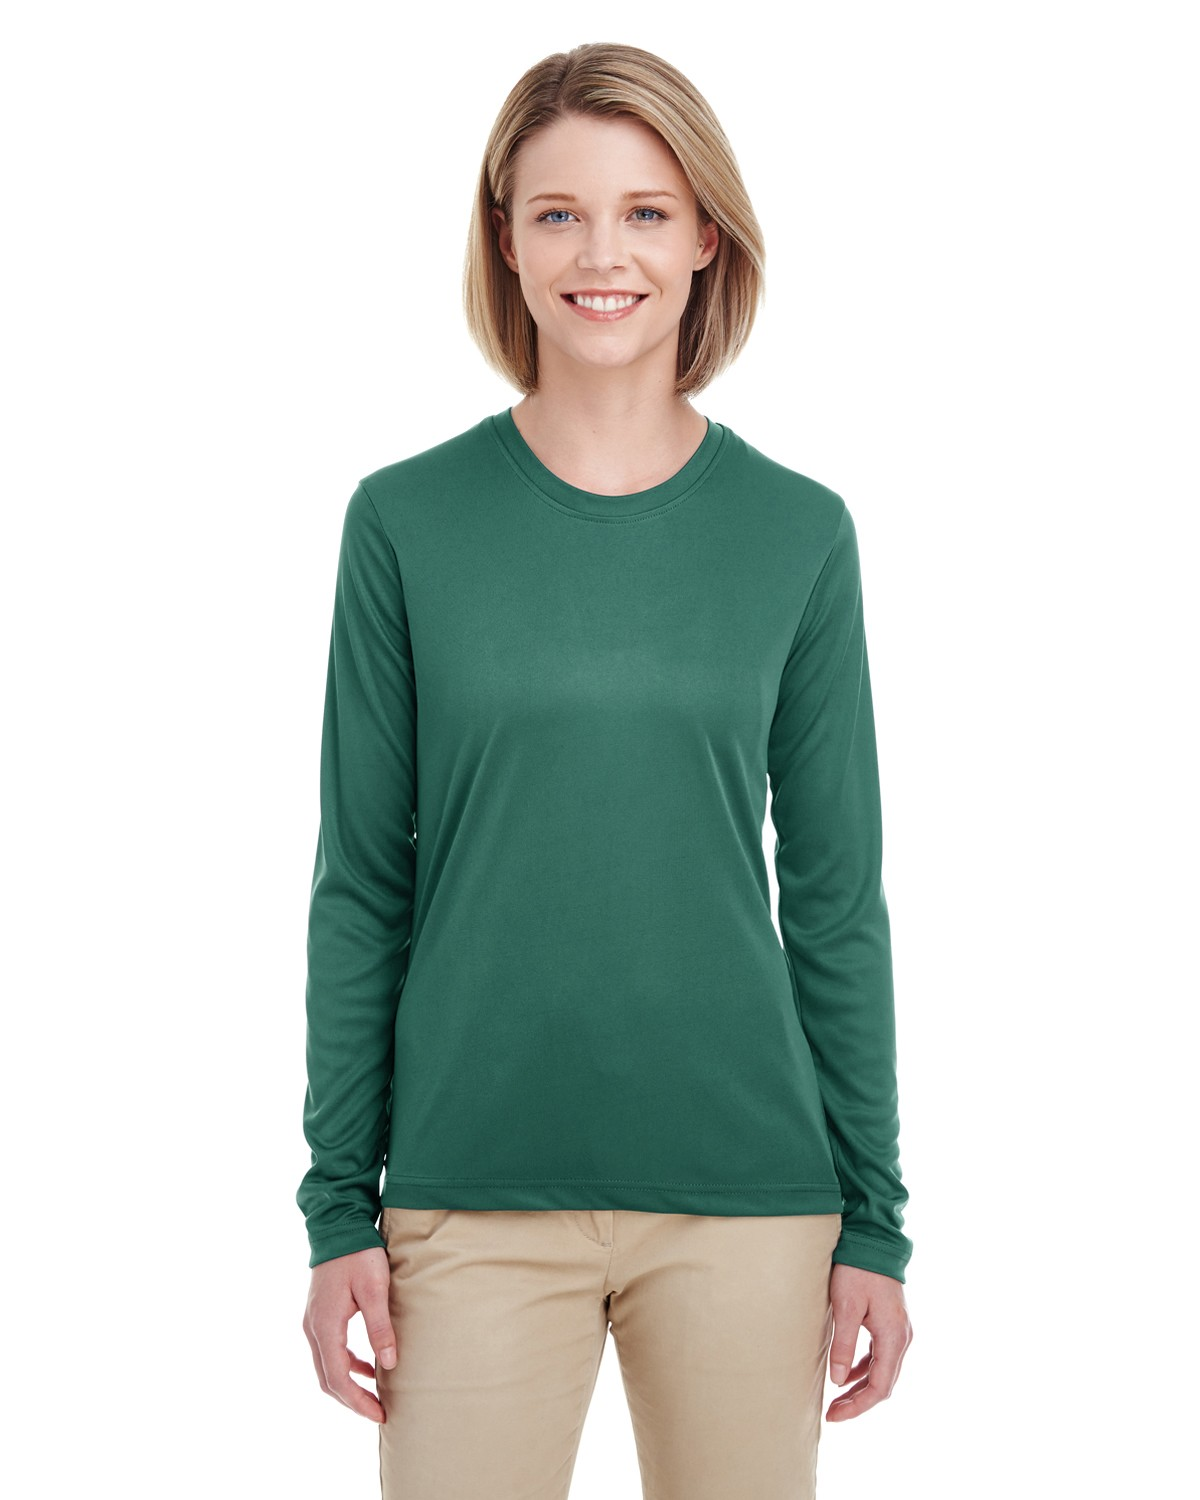 8622W UltraClub FOREST GREEN